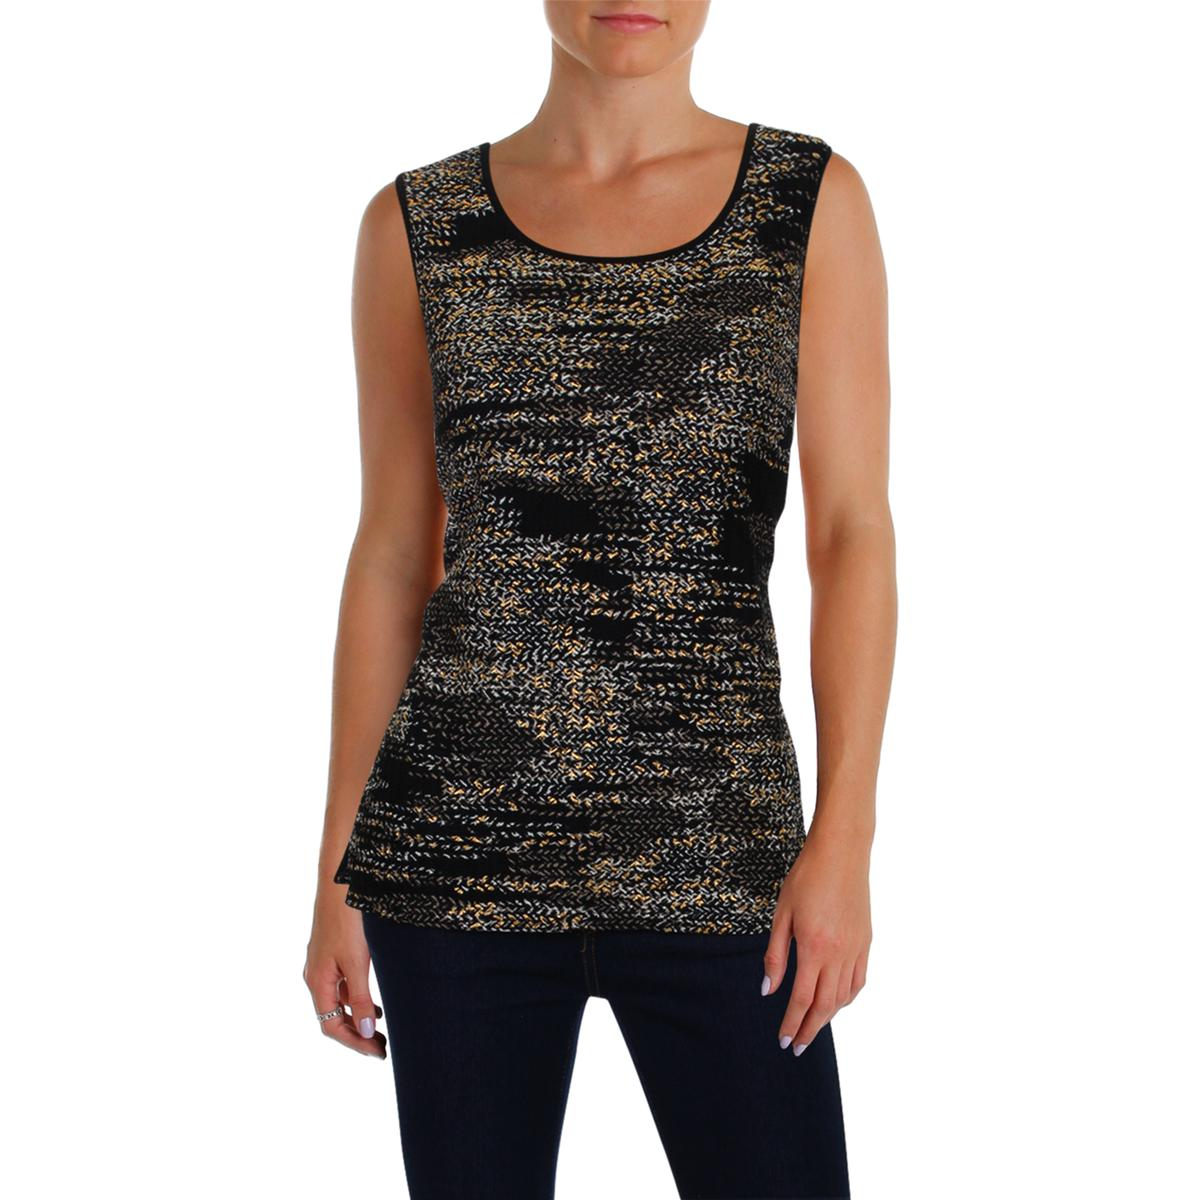 a69489c76d Details about Kasper Womens Printed Jewel Neck Day to Night Shell Top BHFO  9222